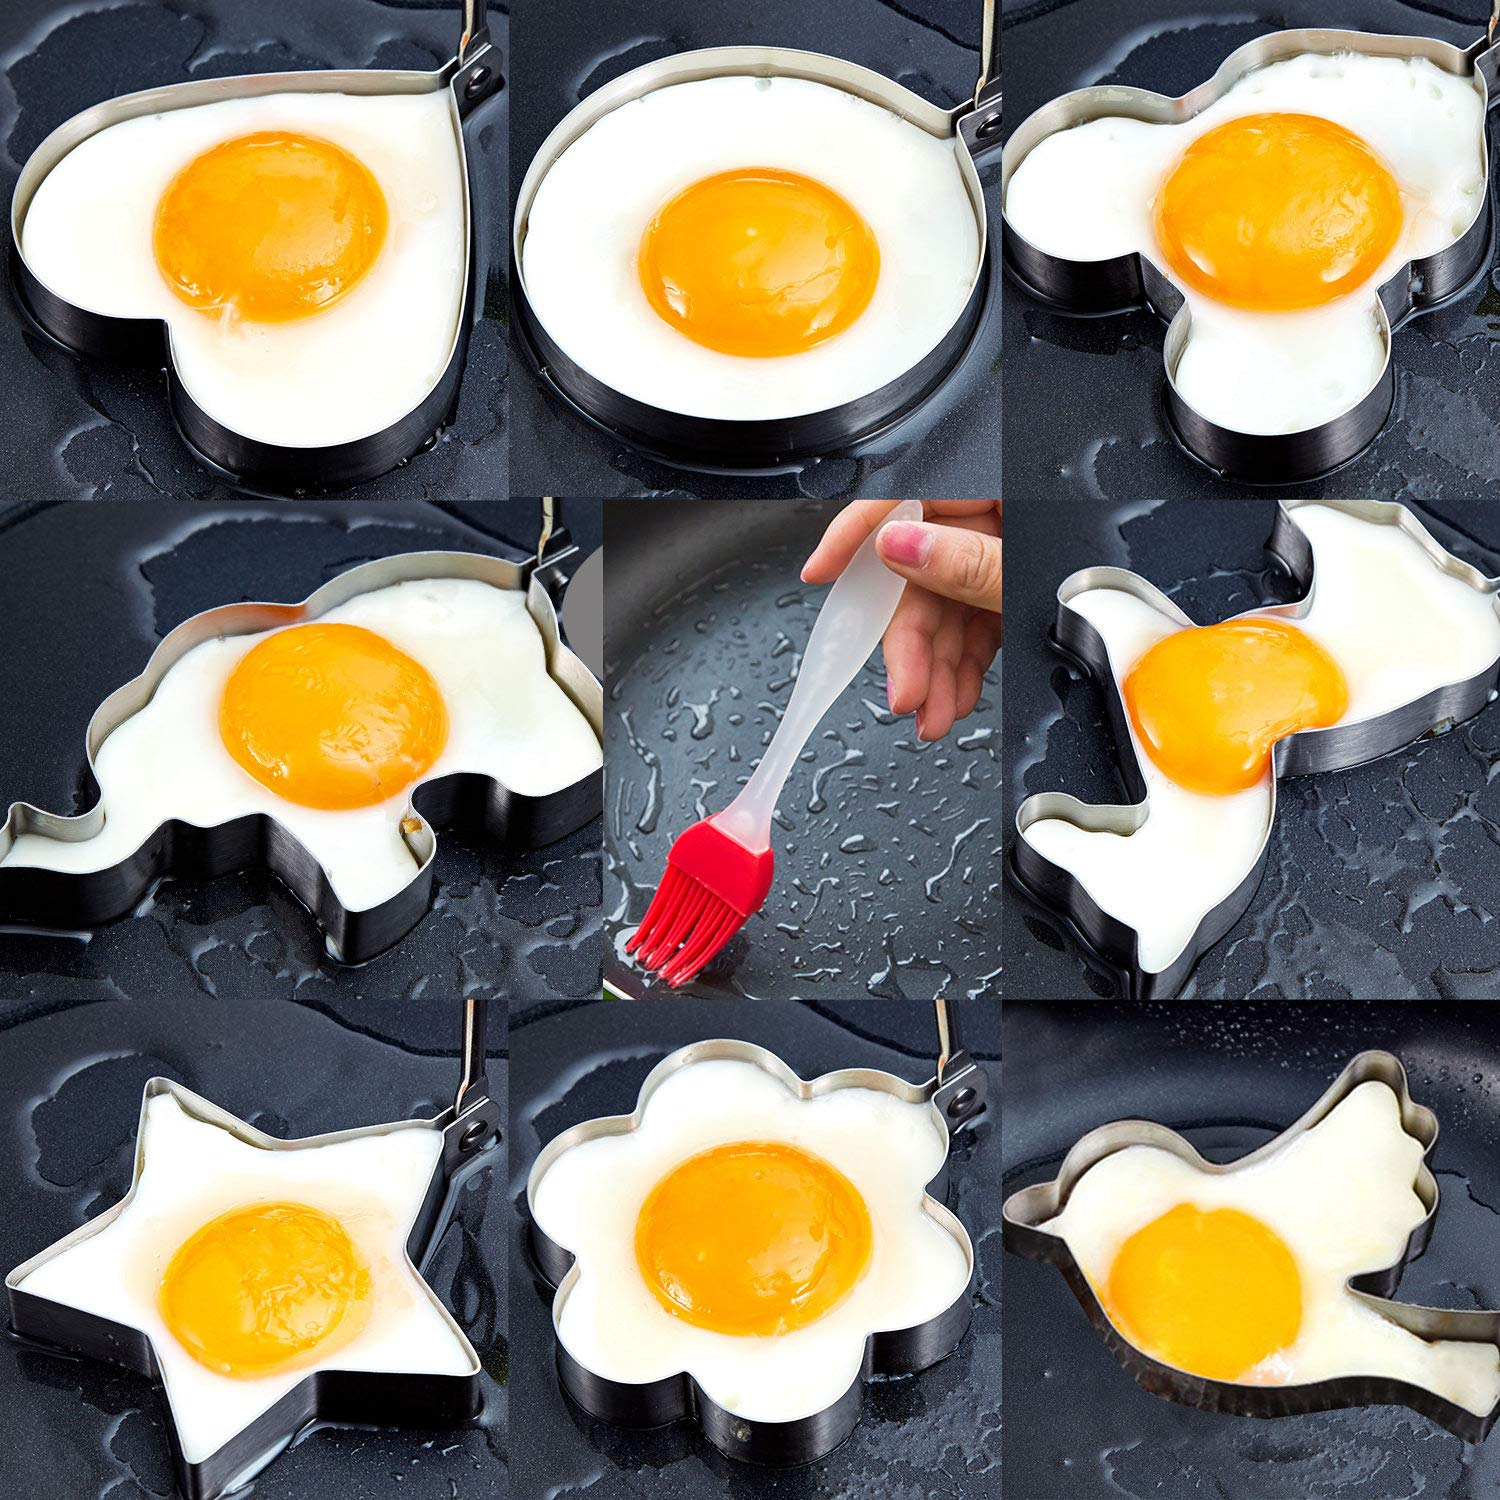 PNBB 8pcs Different Shapes Stainless Steel Fried Egg Molds with 1pc Silicone Pastry Brush - Set of 9 SYNCHKG087598